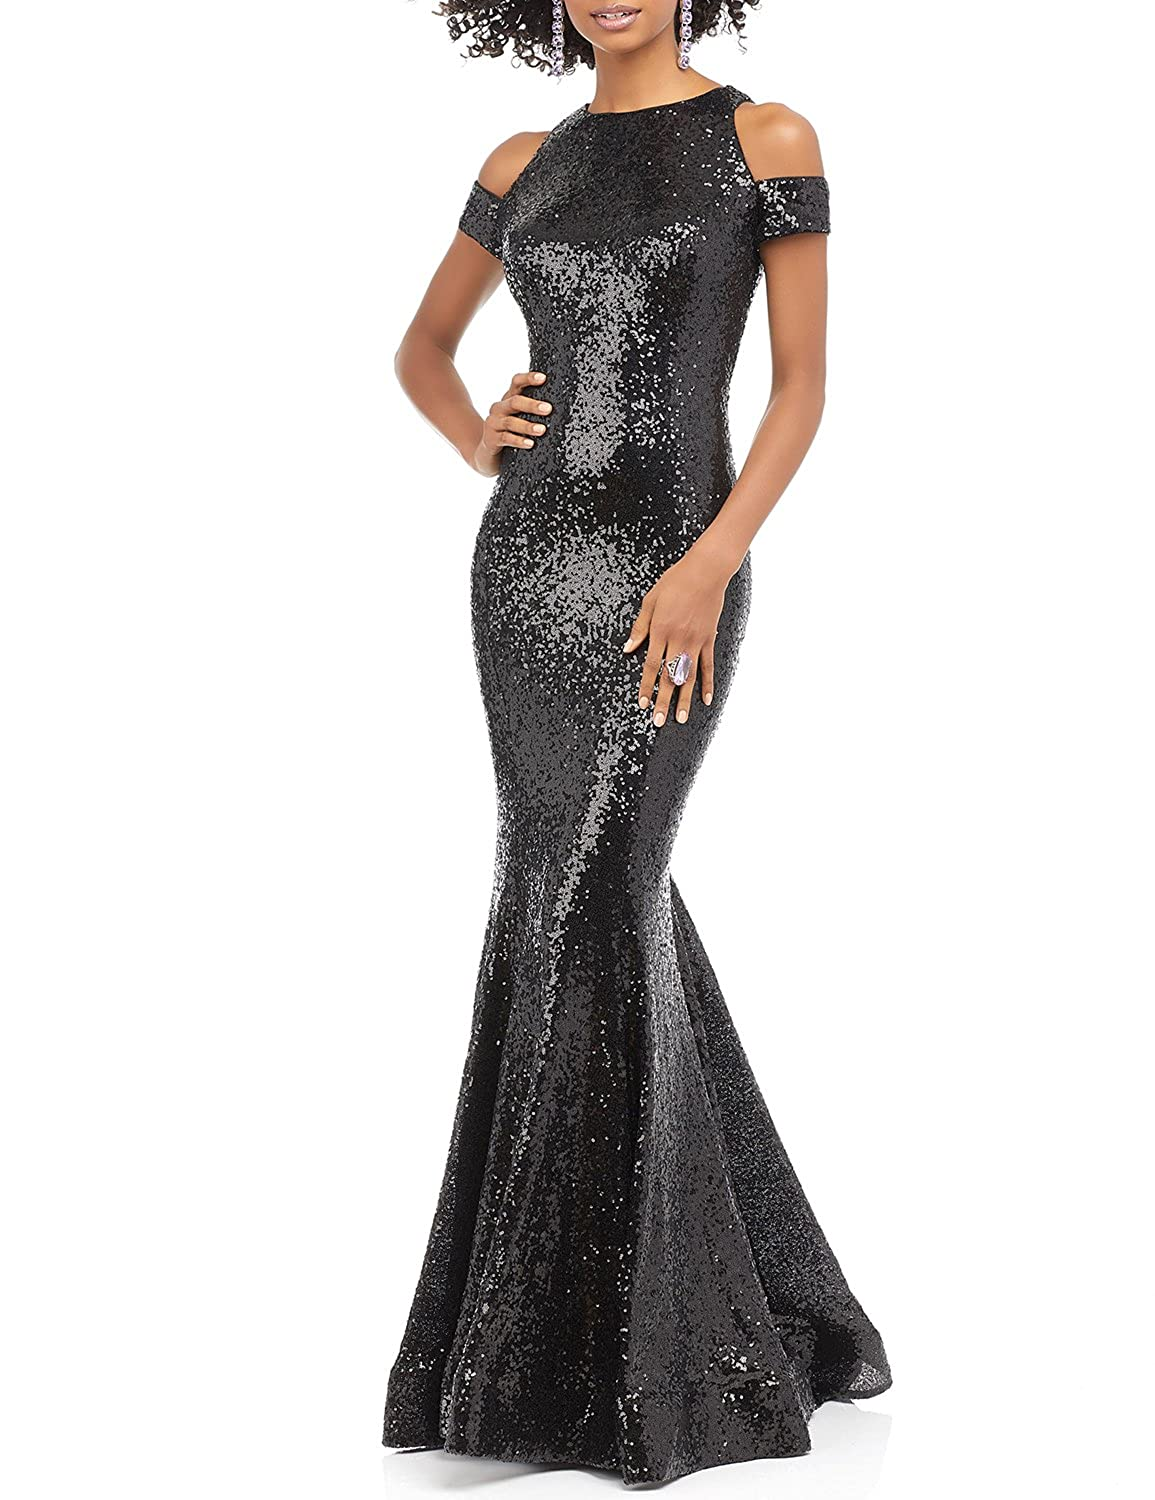 366703fcdc9c DarlingU Womens Mermaid Off Shoulder Evening Prom Party Gown Split  SequinedPM792 at Amazon Women s Clothing store